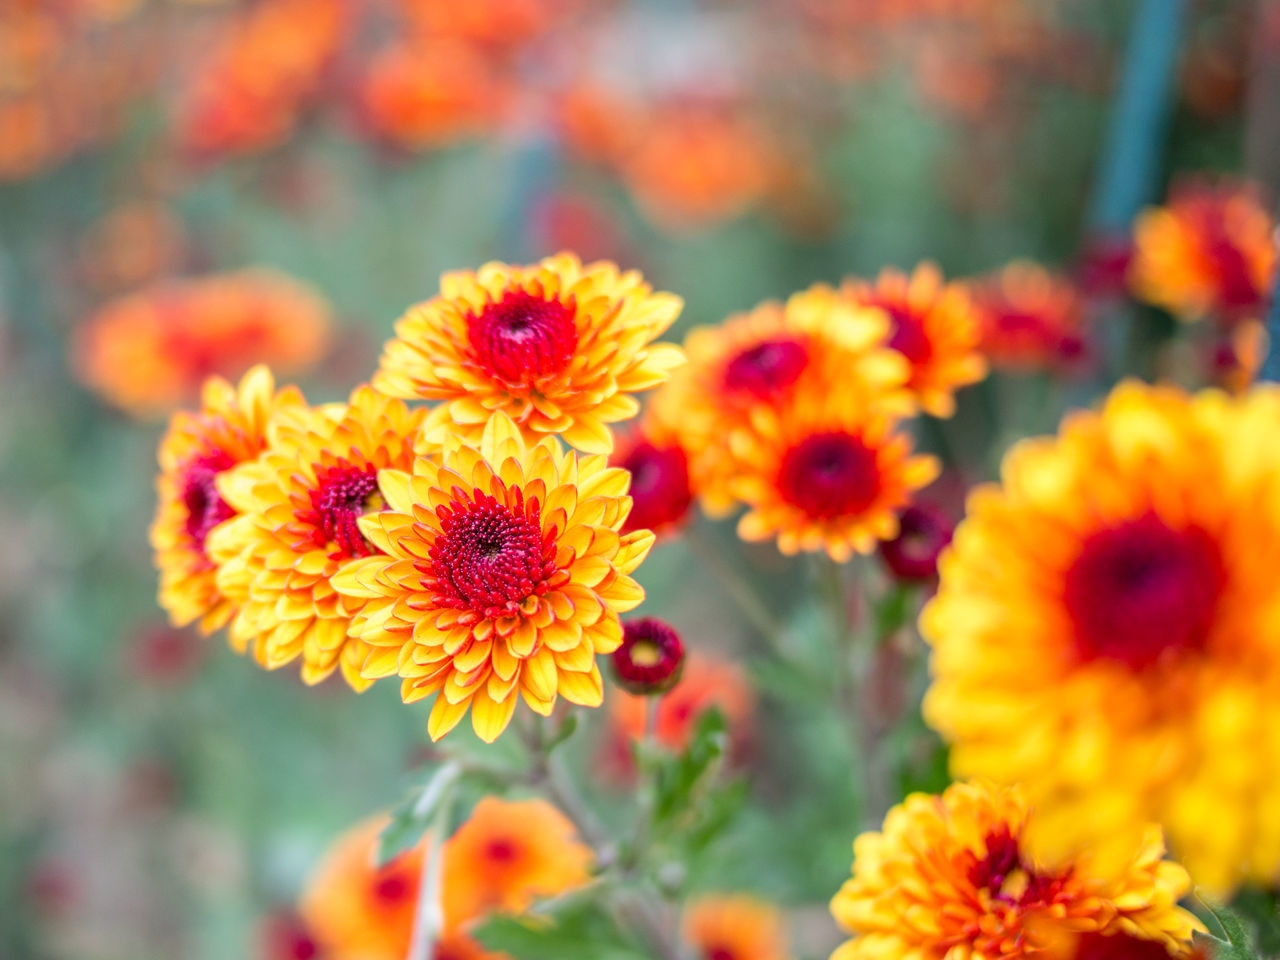 flower, fragility, freshness, petal, beauty in nature, flower head, growth, nature, yellow, orange color, plant, no people, blooming, day, outdoors, marigold, close-up, focus on foreground, zinnia